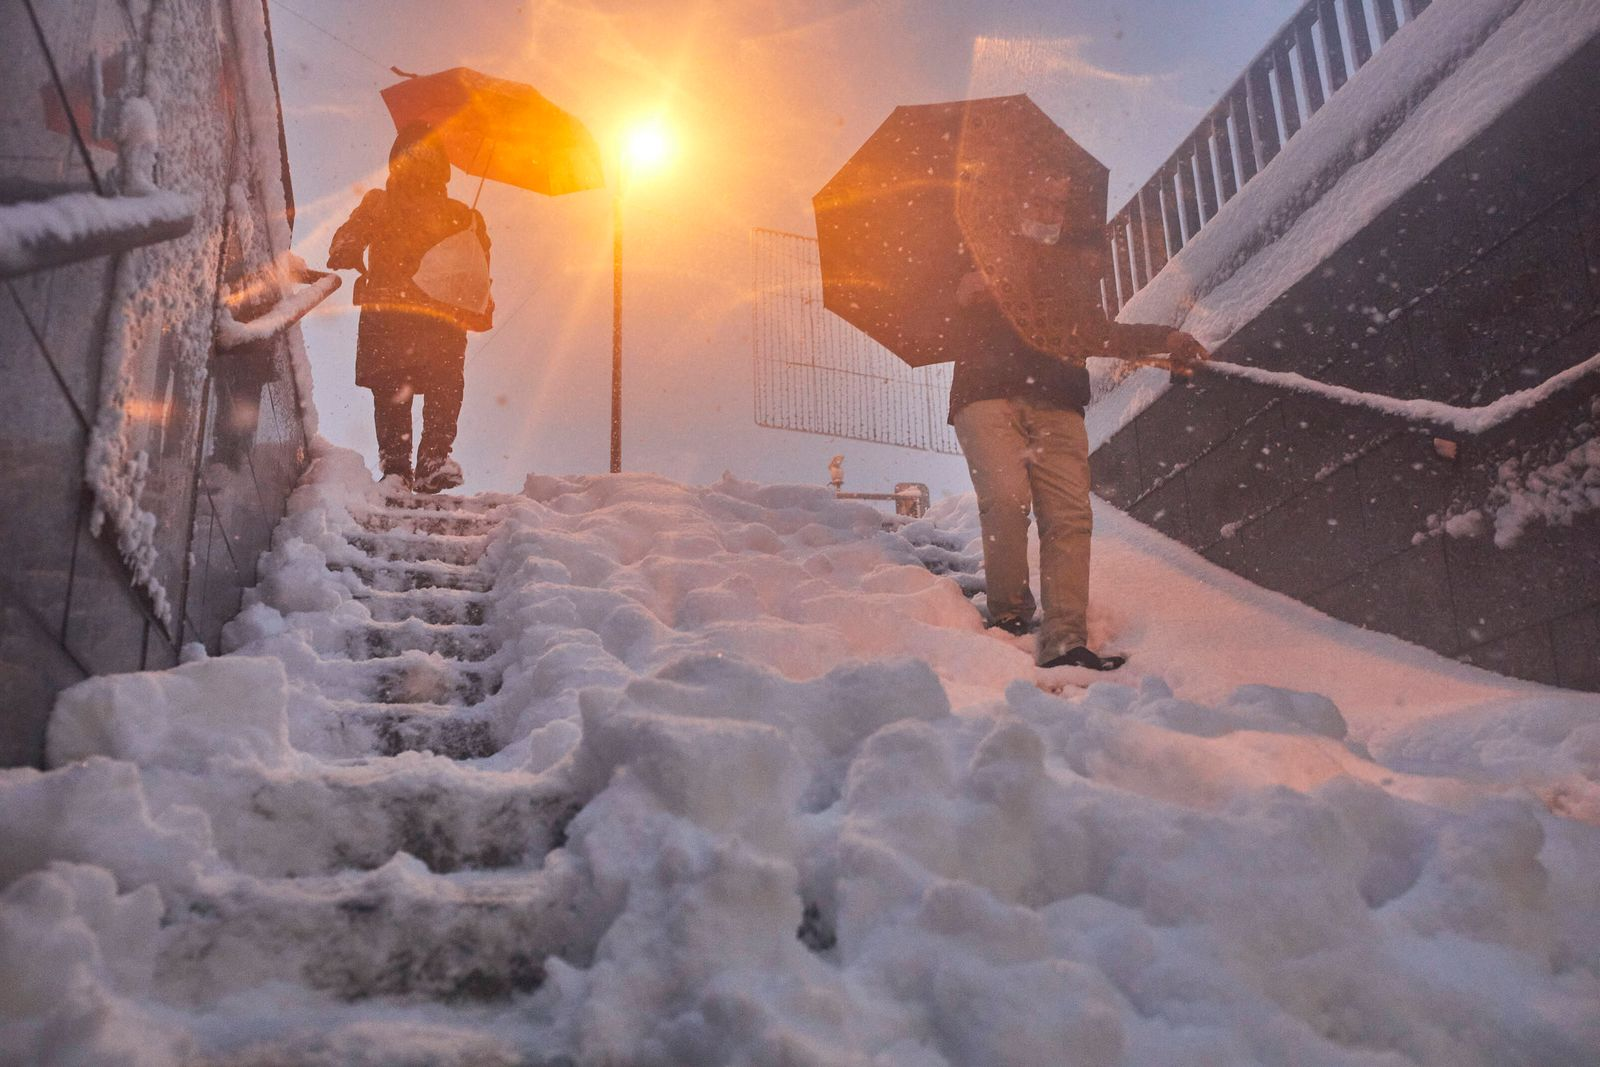 Two people descend a staircase from a snow-covered metro station after passing through the Filomena squall in Madrid (S